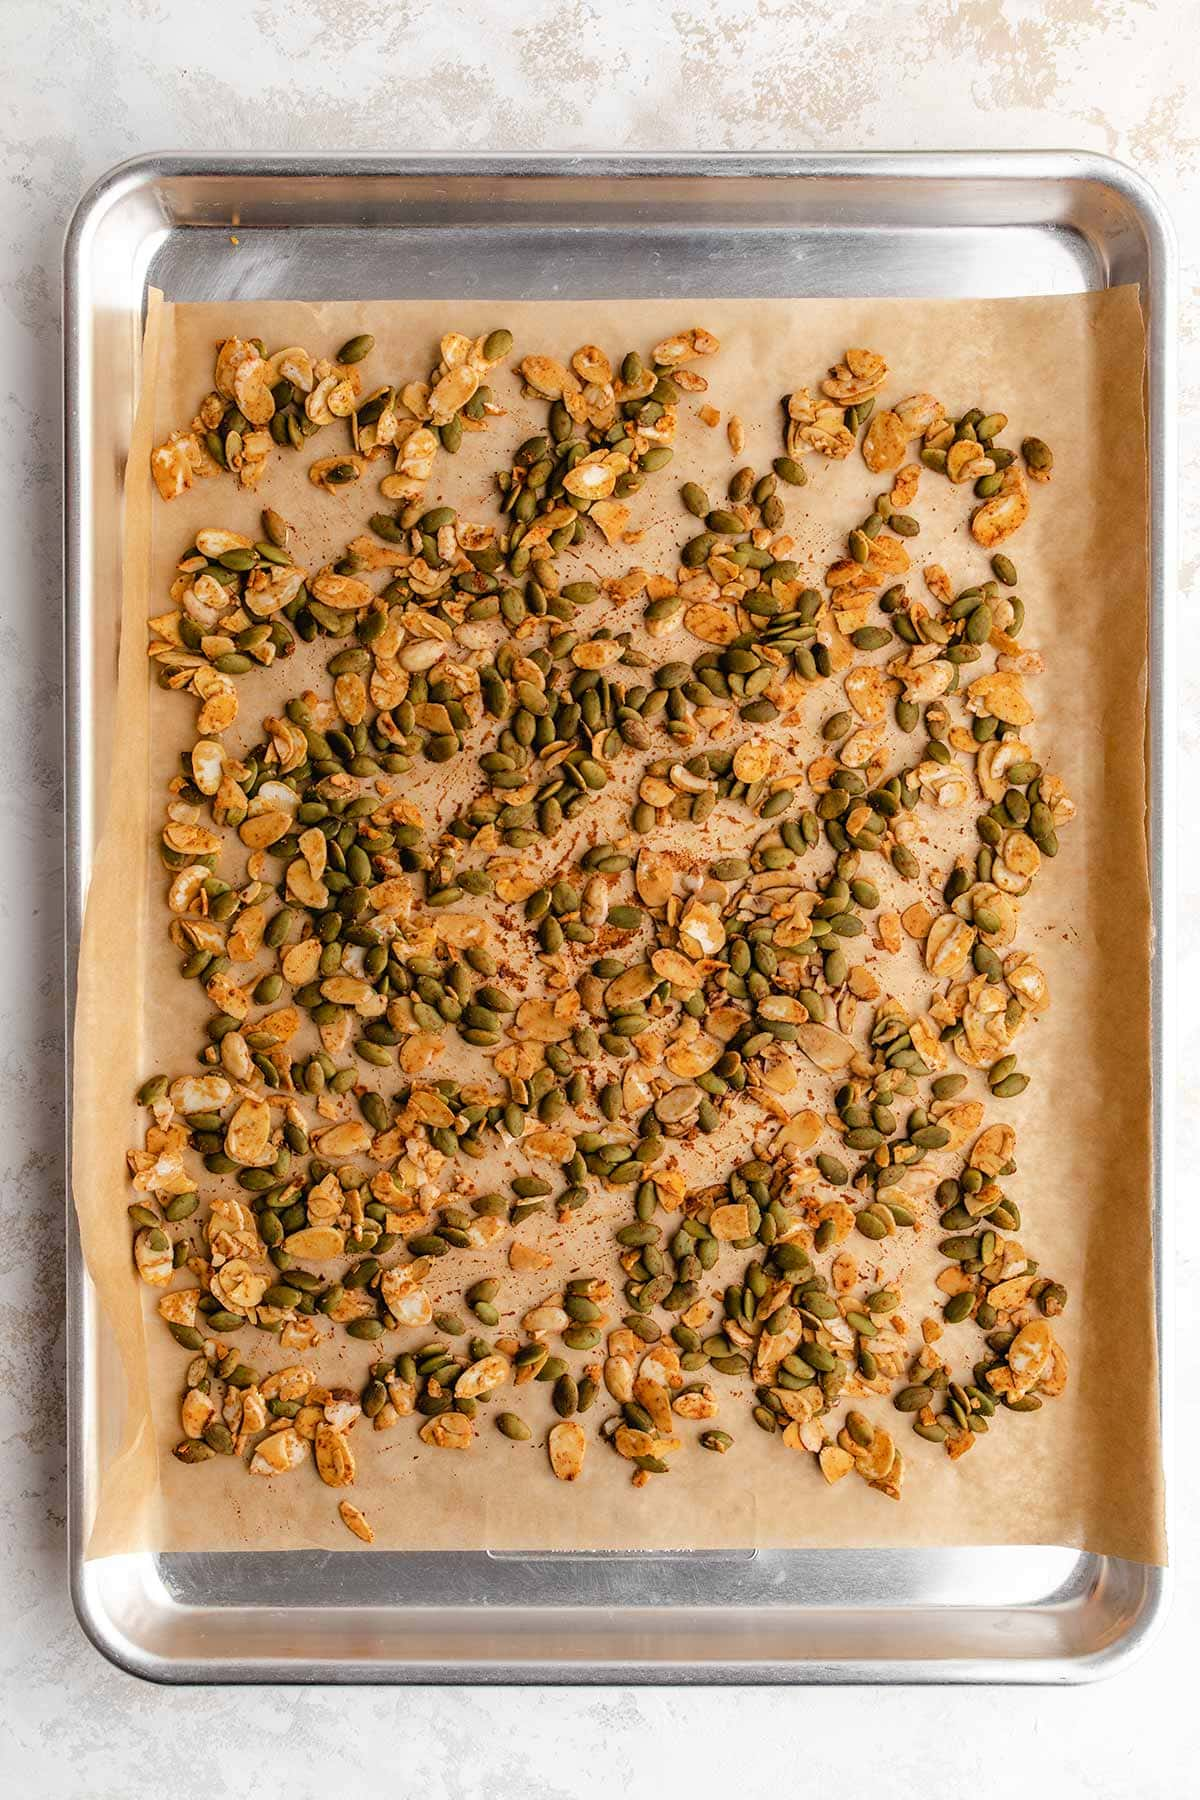 Pepitas and almond slices on a parchment-lined baking sheet, seasoned with paprika, cumin and tamari.